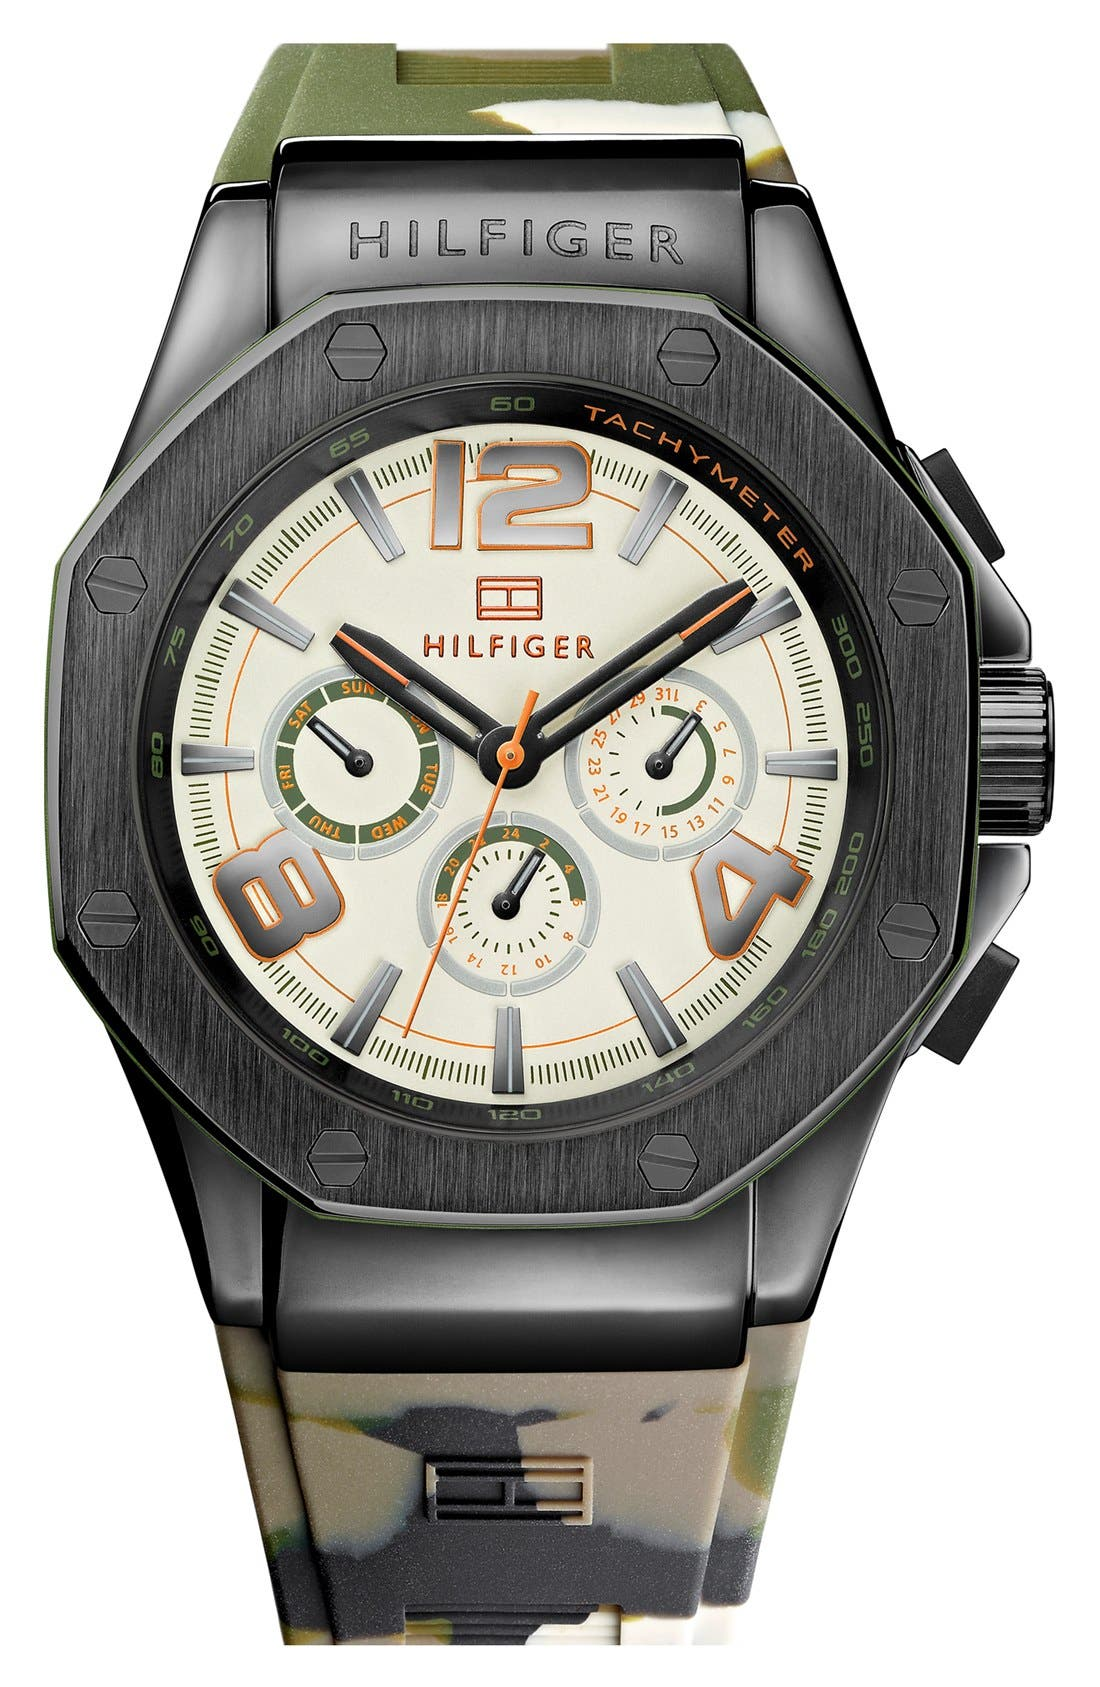 Main Image - Tommy Hilfiger Bolted Bezel Silicone Strap Watch, 44mm x 59mm